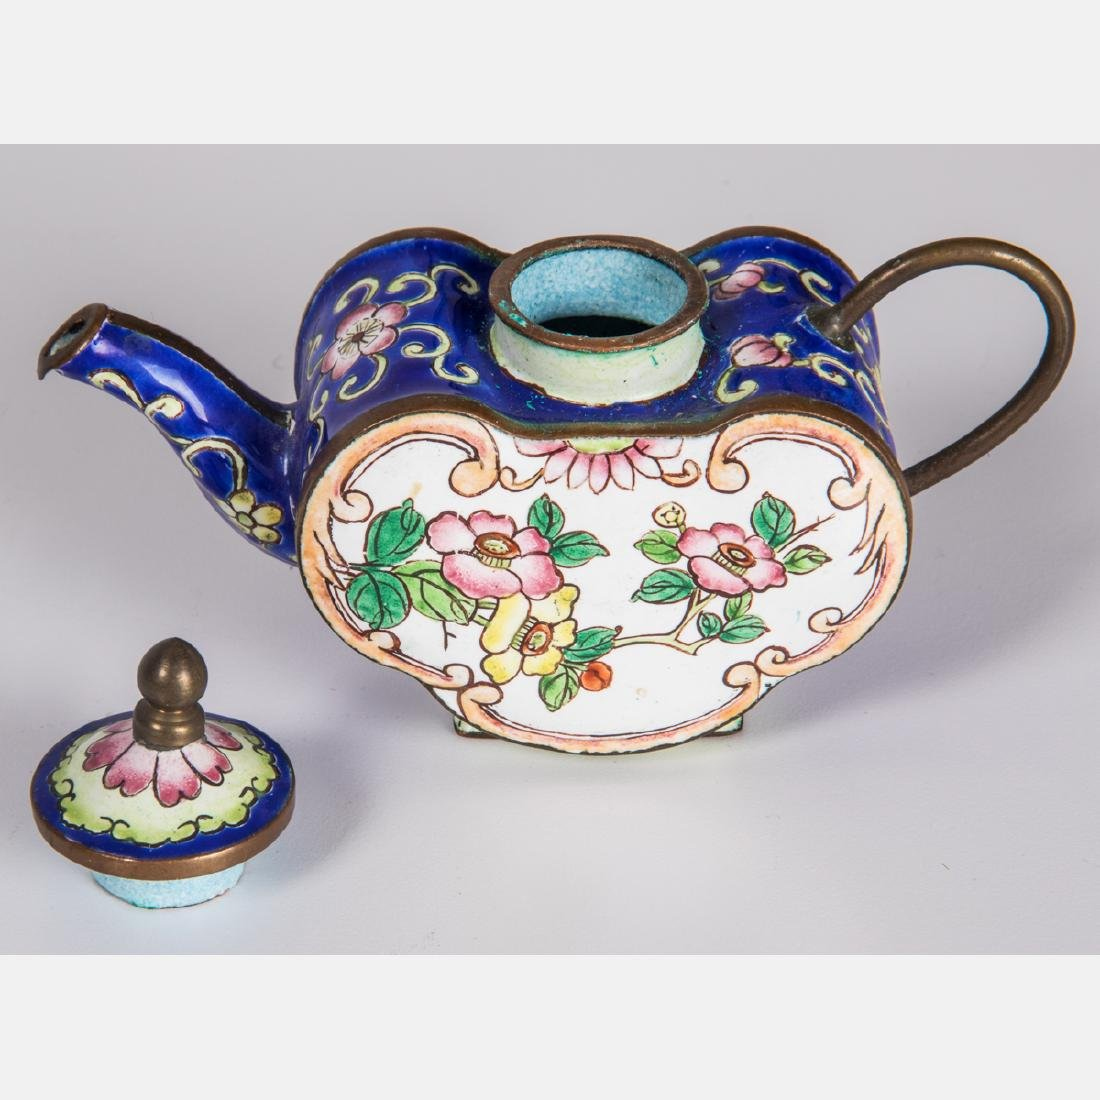 A Group of Eight Chinese Cloisonné and Enameled - 4